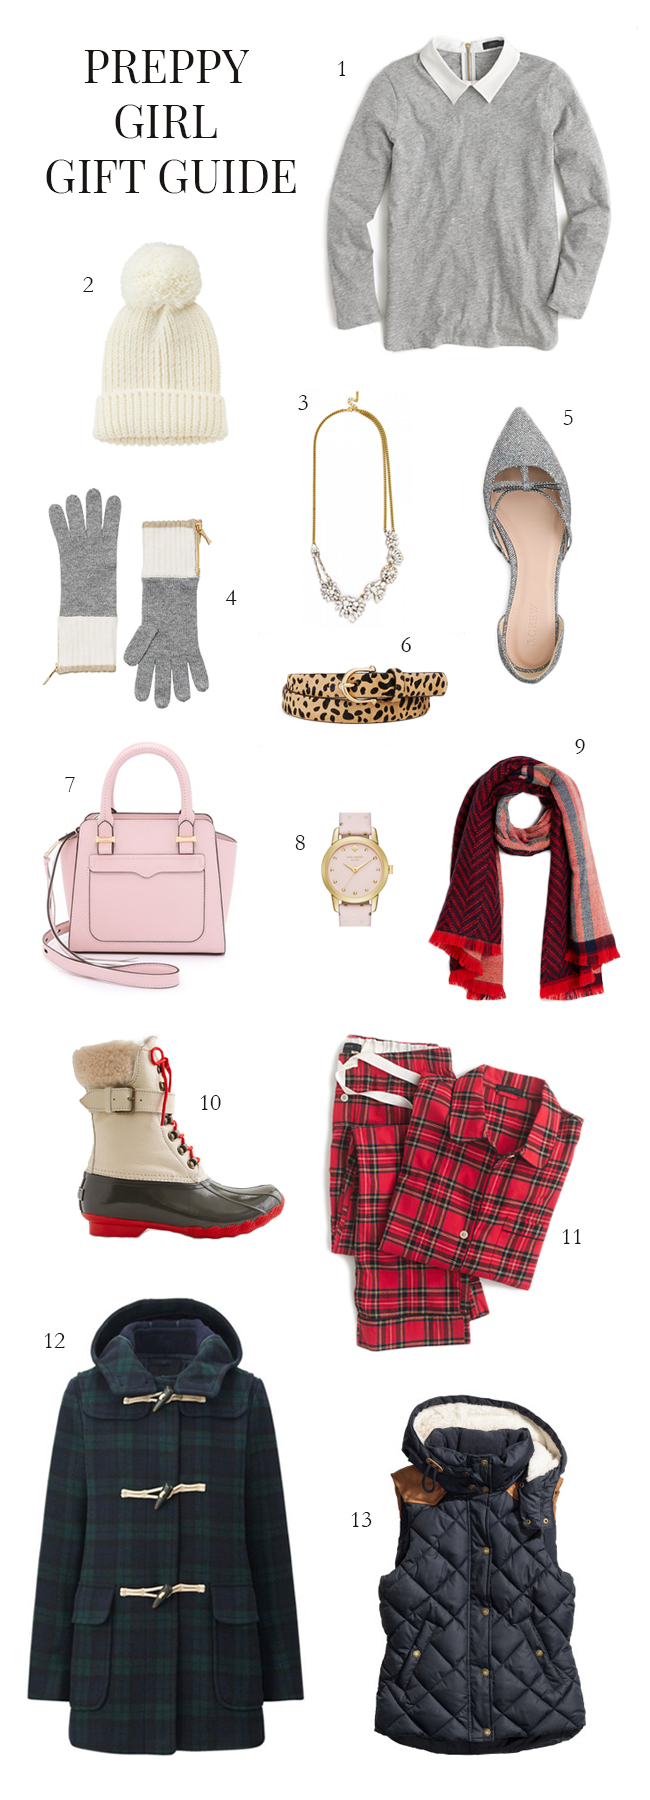 Preppy Girl Gift Guide 2015 | Style and Cheek